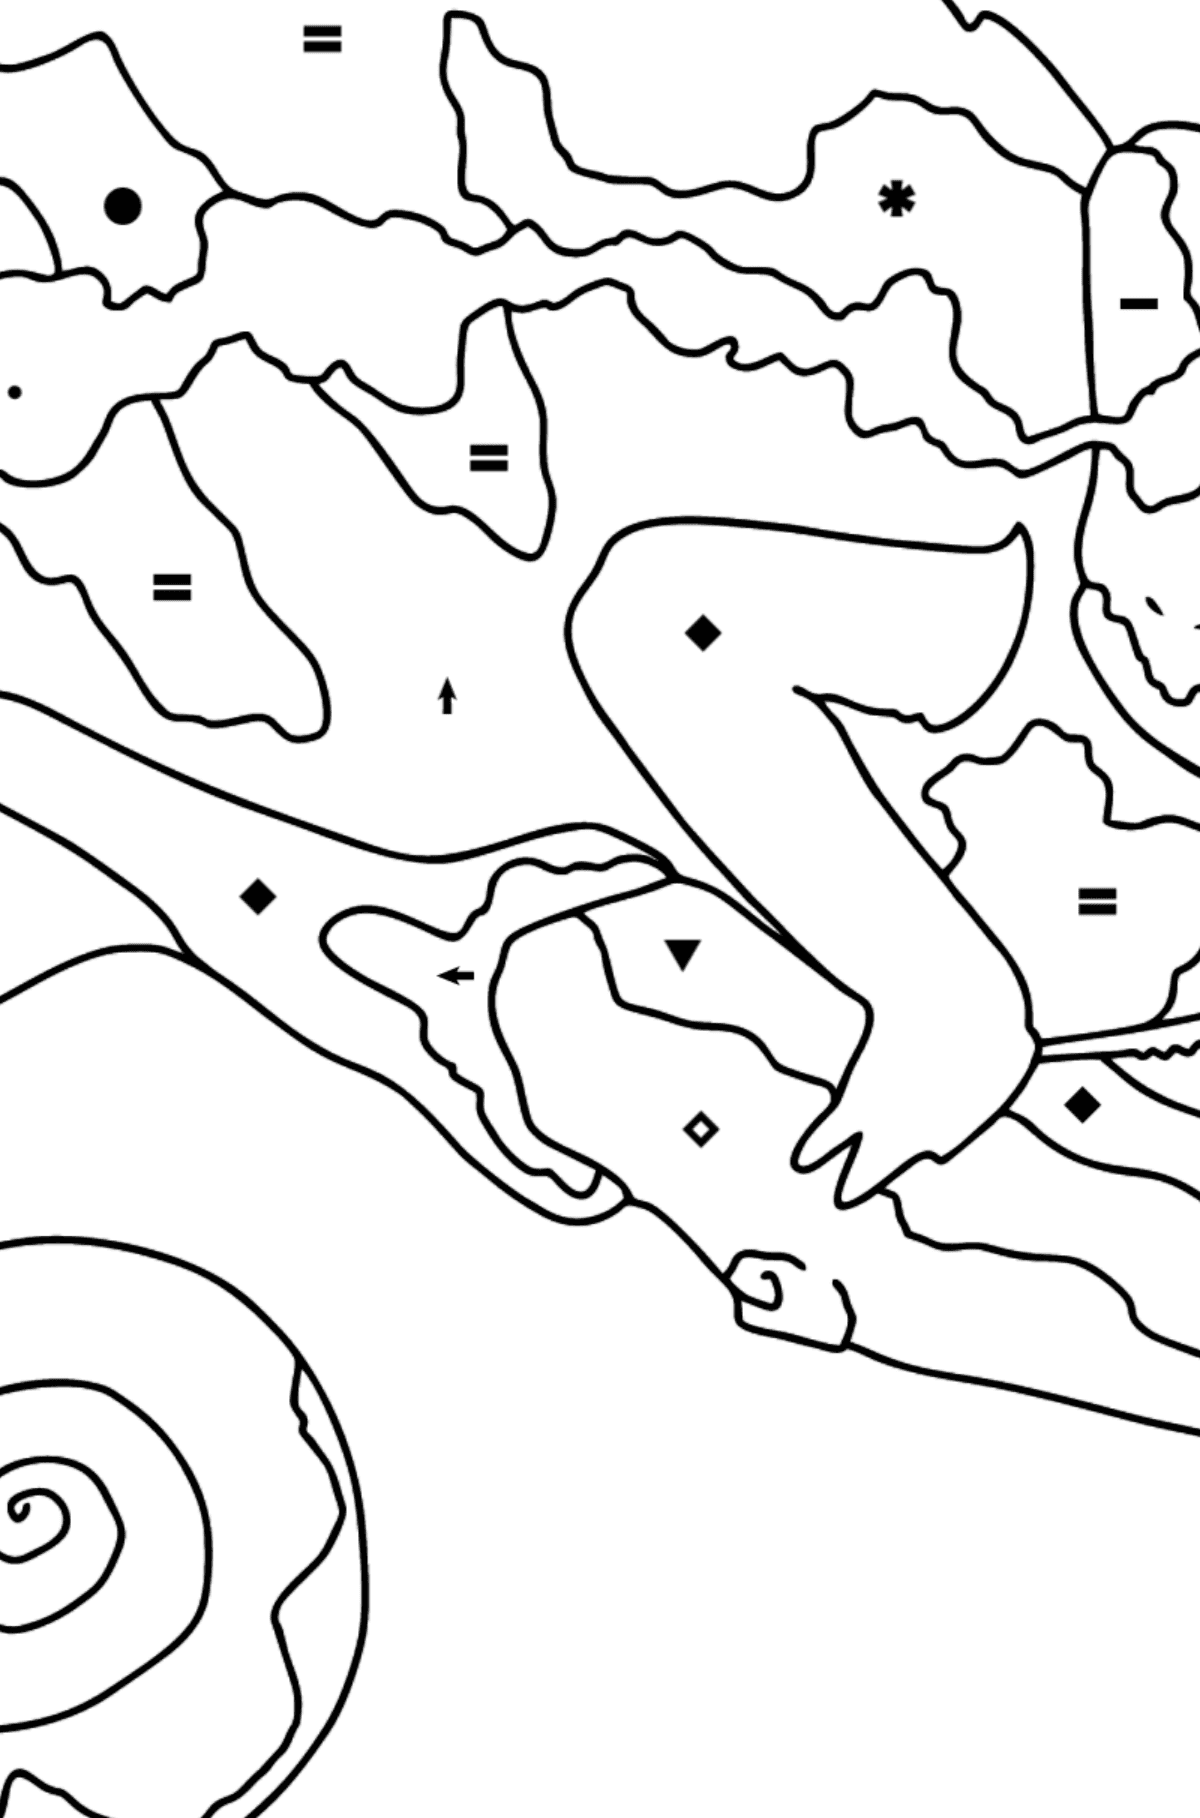 Coloring Page - A Multicolored Chameleon - Coloring by Symbols for Kids